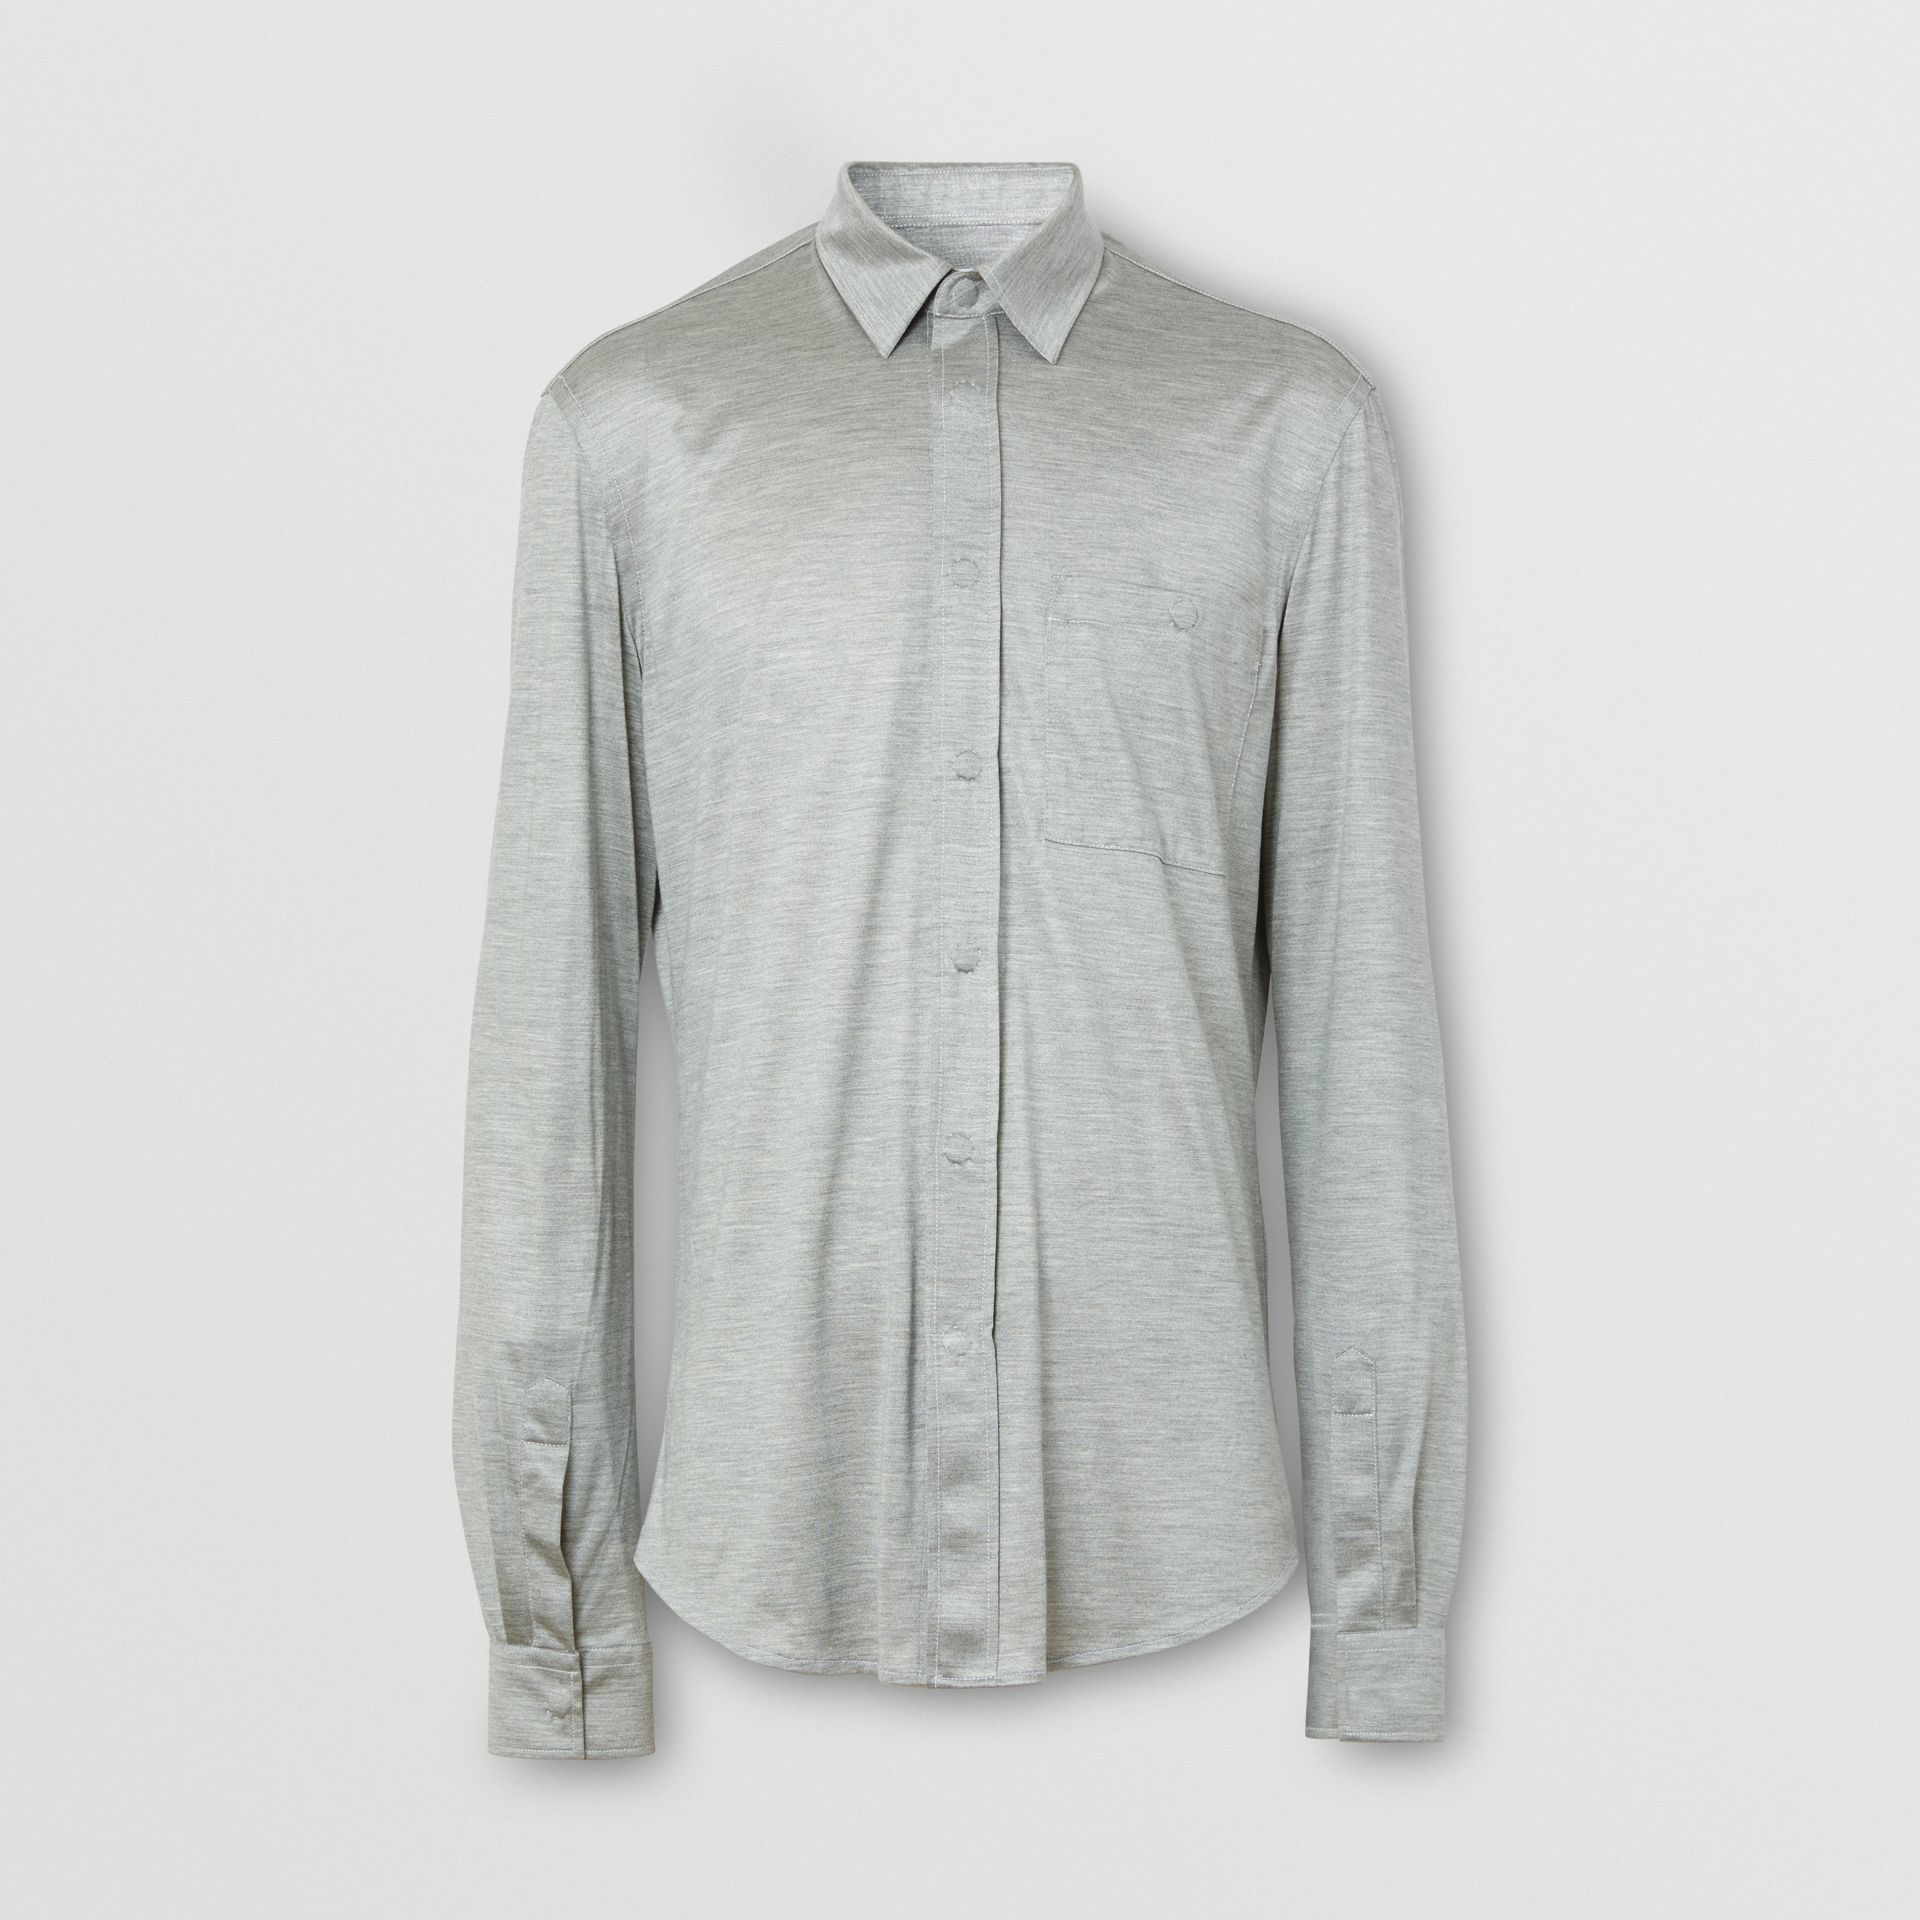 Classic Fit Silk Jersey Shirt in Light Pebble Grey | Burberry Australia - gallery image 3